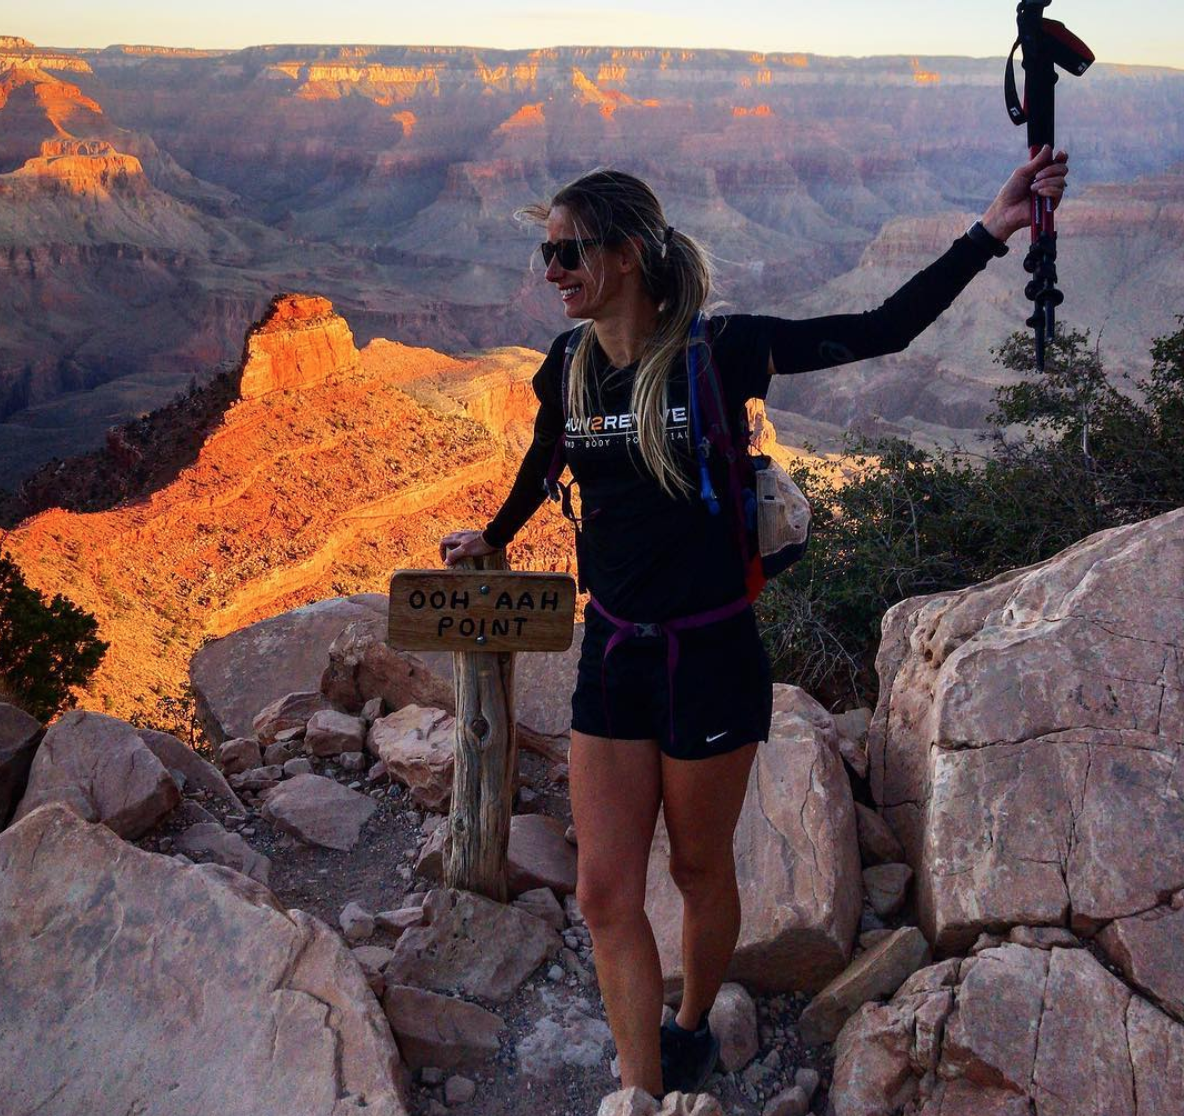 Can you imagine a world without Alzheimer and ALS? - This September, I will be crossing the Grand Canyon by foot (my adventure for this year) - going from one Rim to the other. This adventure will be supported by volunteers from a group called Run2Revive, who raises money for research on Alzheimer and ALS diseases. So, if you can, I ask you to donate any amount you are comfortable with to help me support this amazing cause.